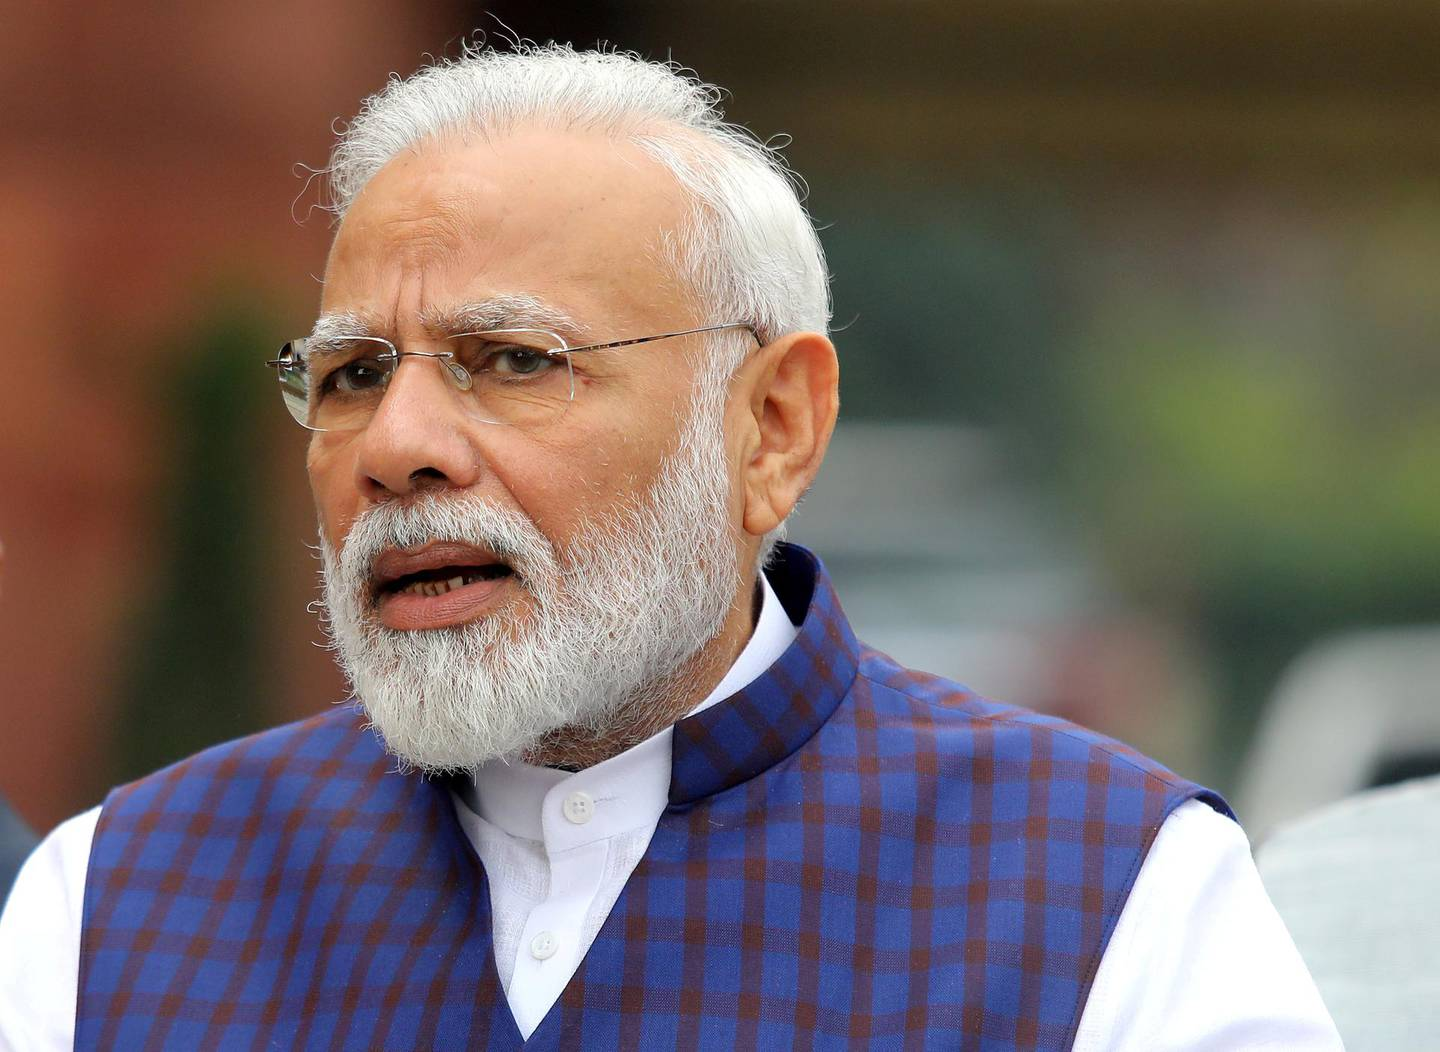 FILE PHOTO: India's Prime Minister Narendra Modi speaks to the media inside the parliament premises on the first day of the winter session in New Delhi, India, November 18, 2019. REUTERS/Altaf Hussain/File Photo